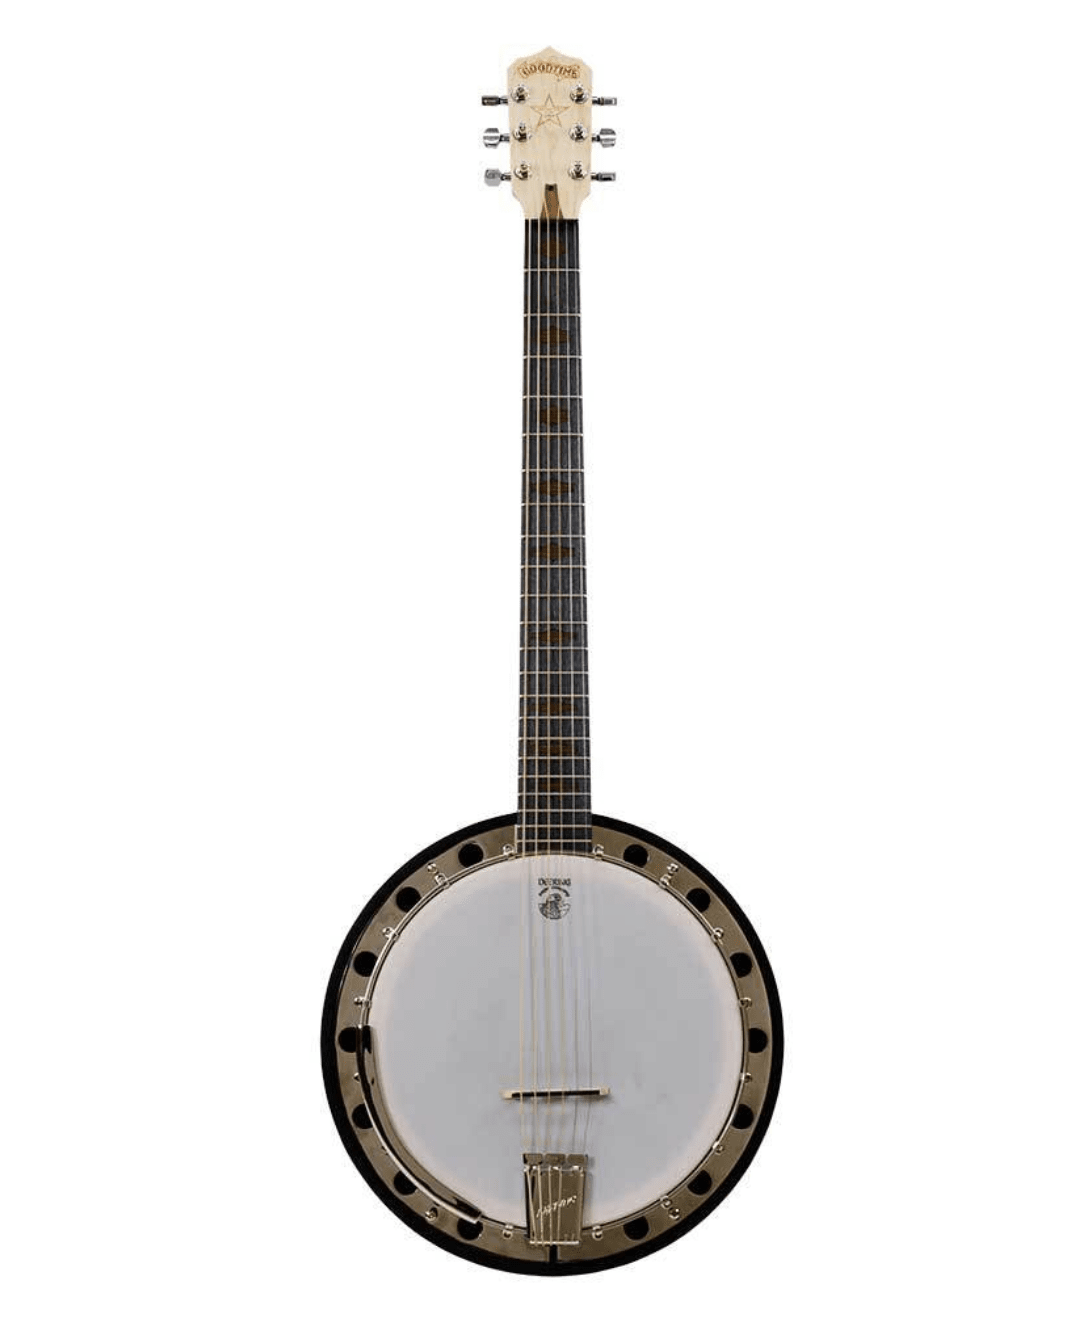 Goodtime Six-R 6 String Banjo - Banjo Studio